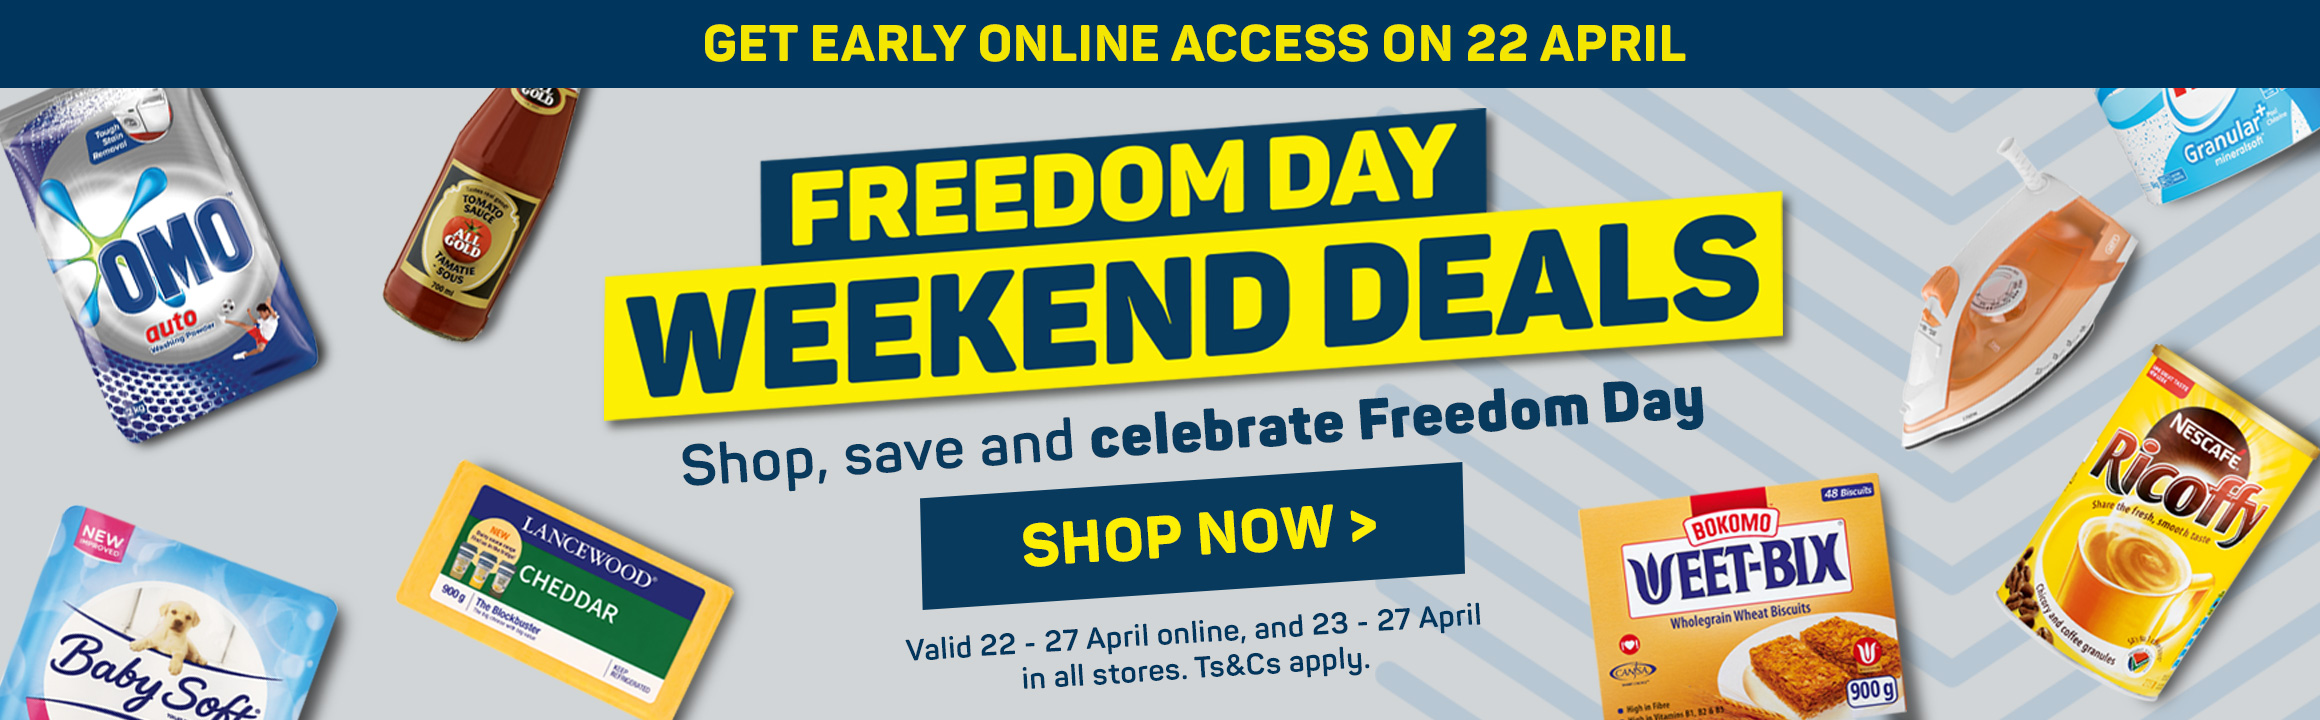 Freedom day weekend deals. Shop now